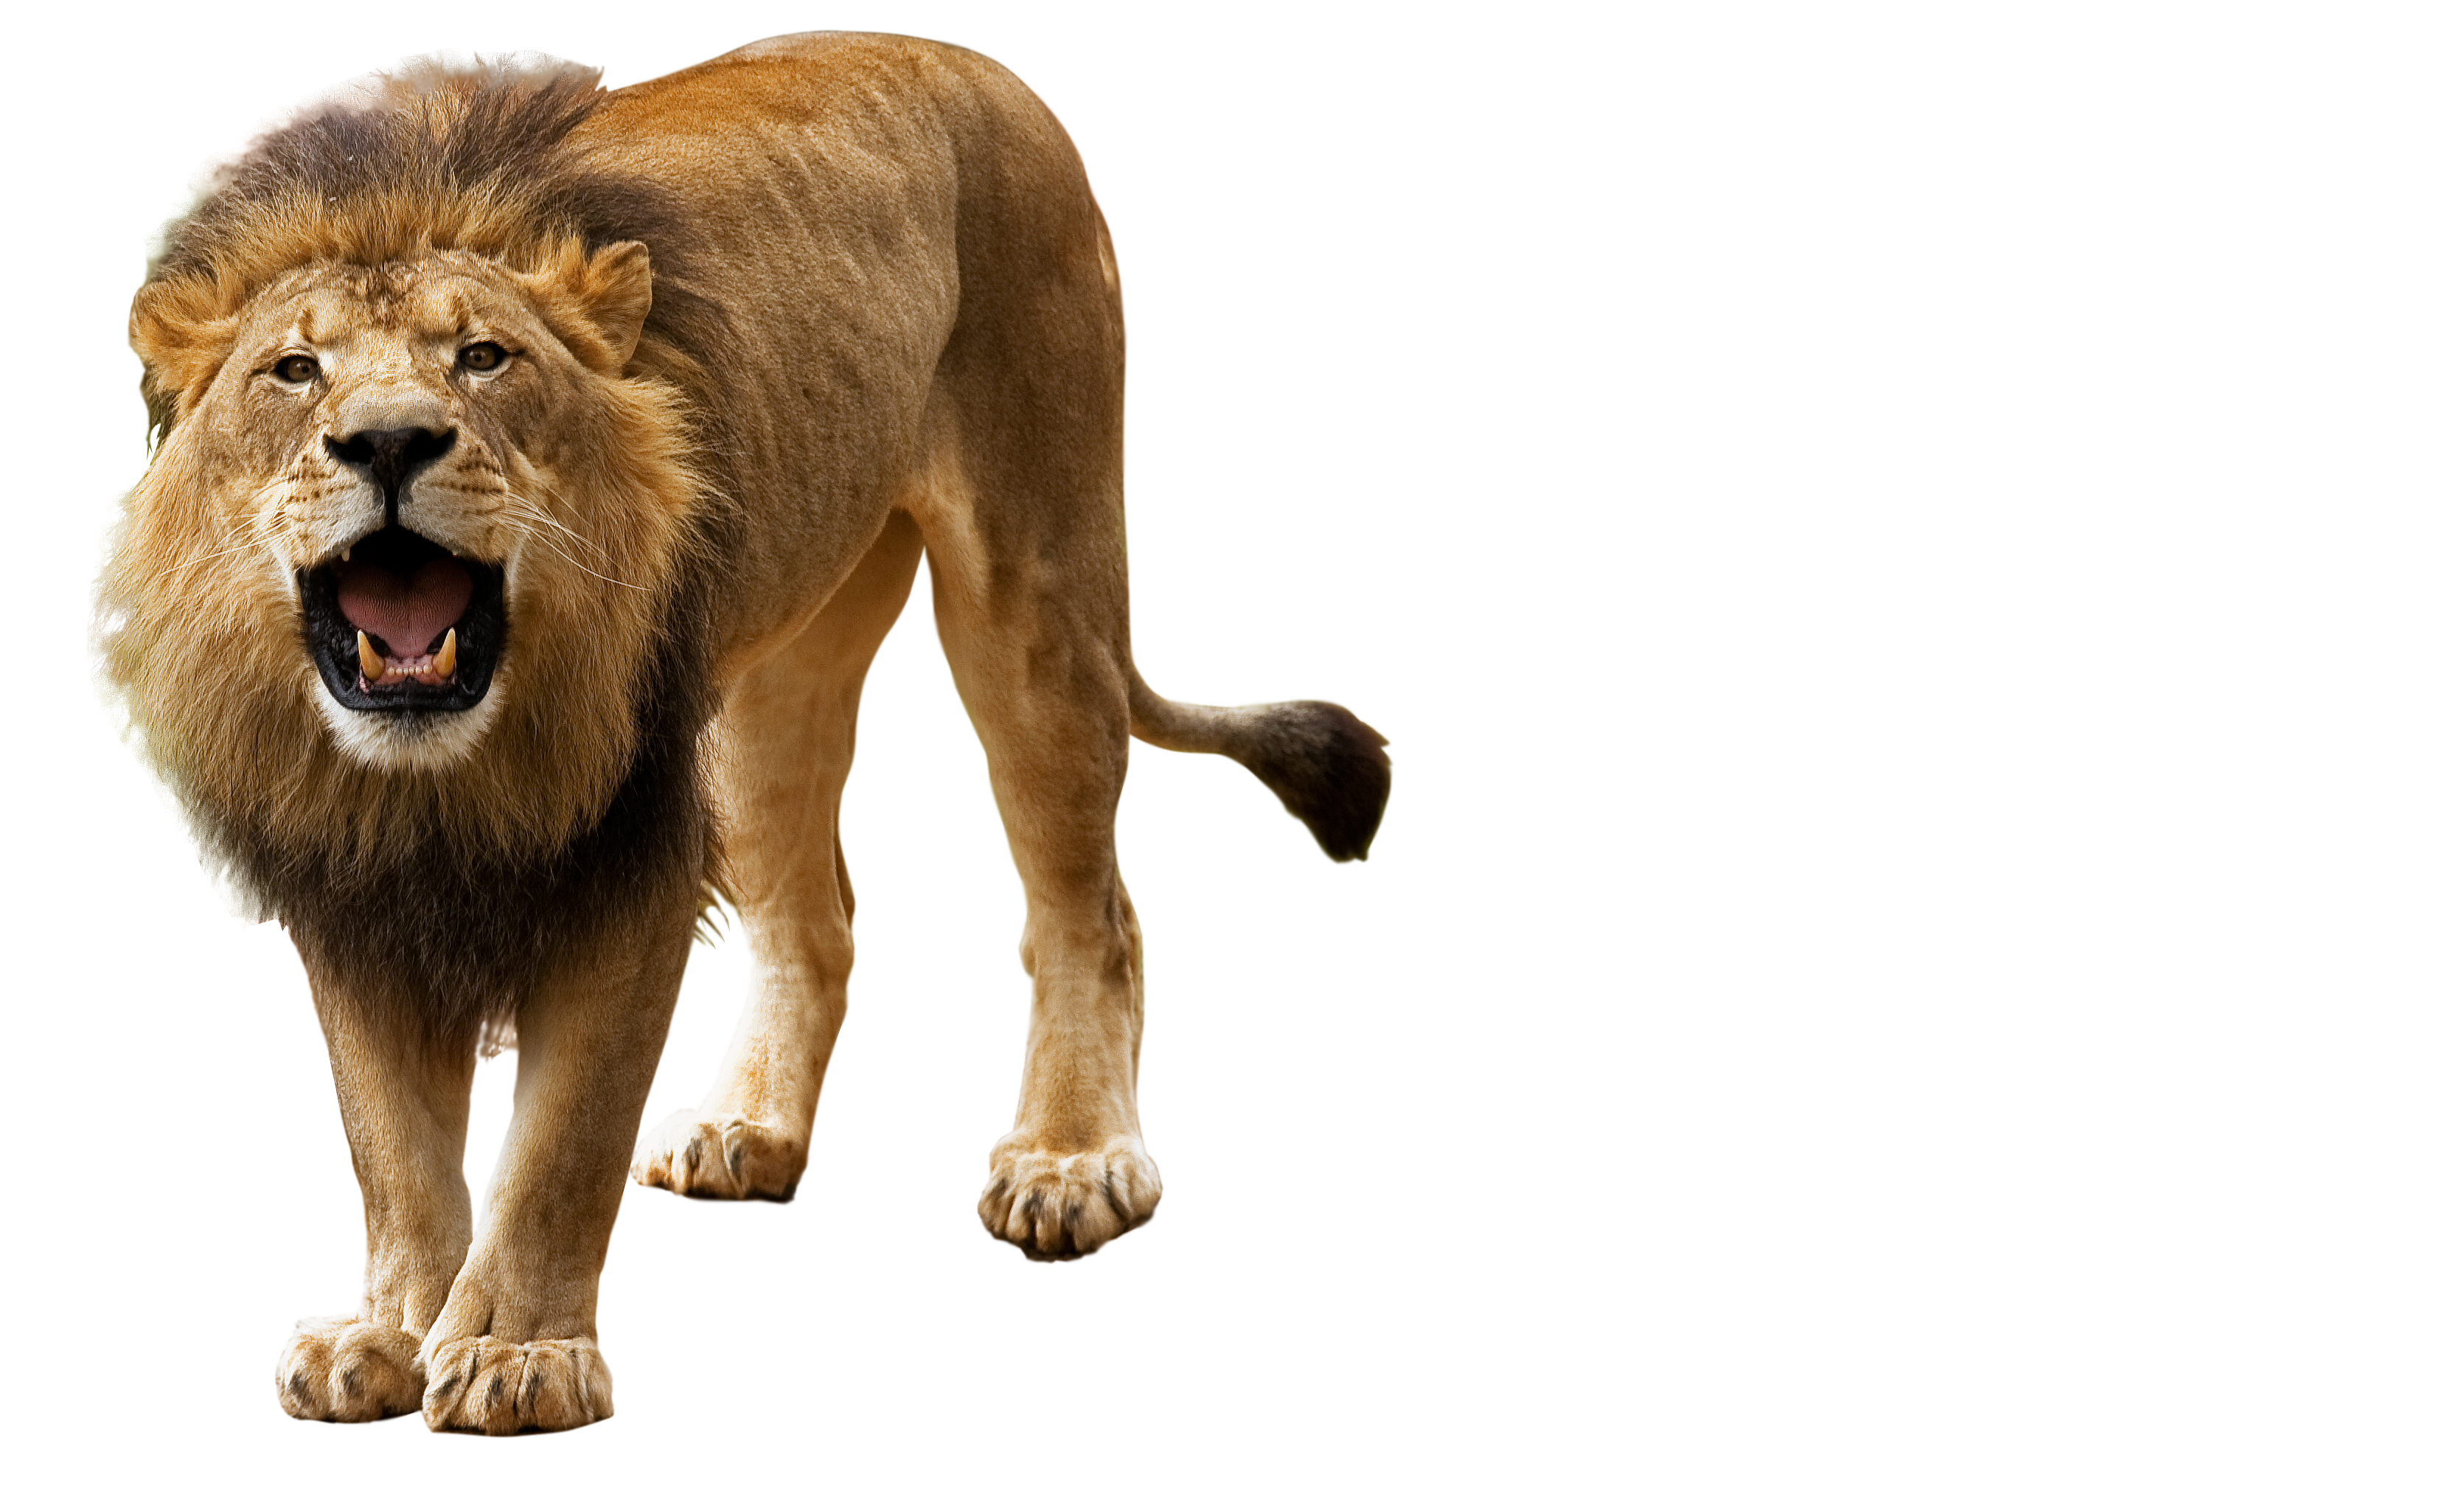 Roar, Angry Lion Png image #42280